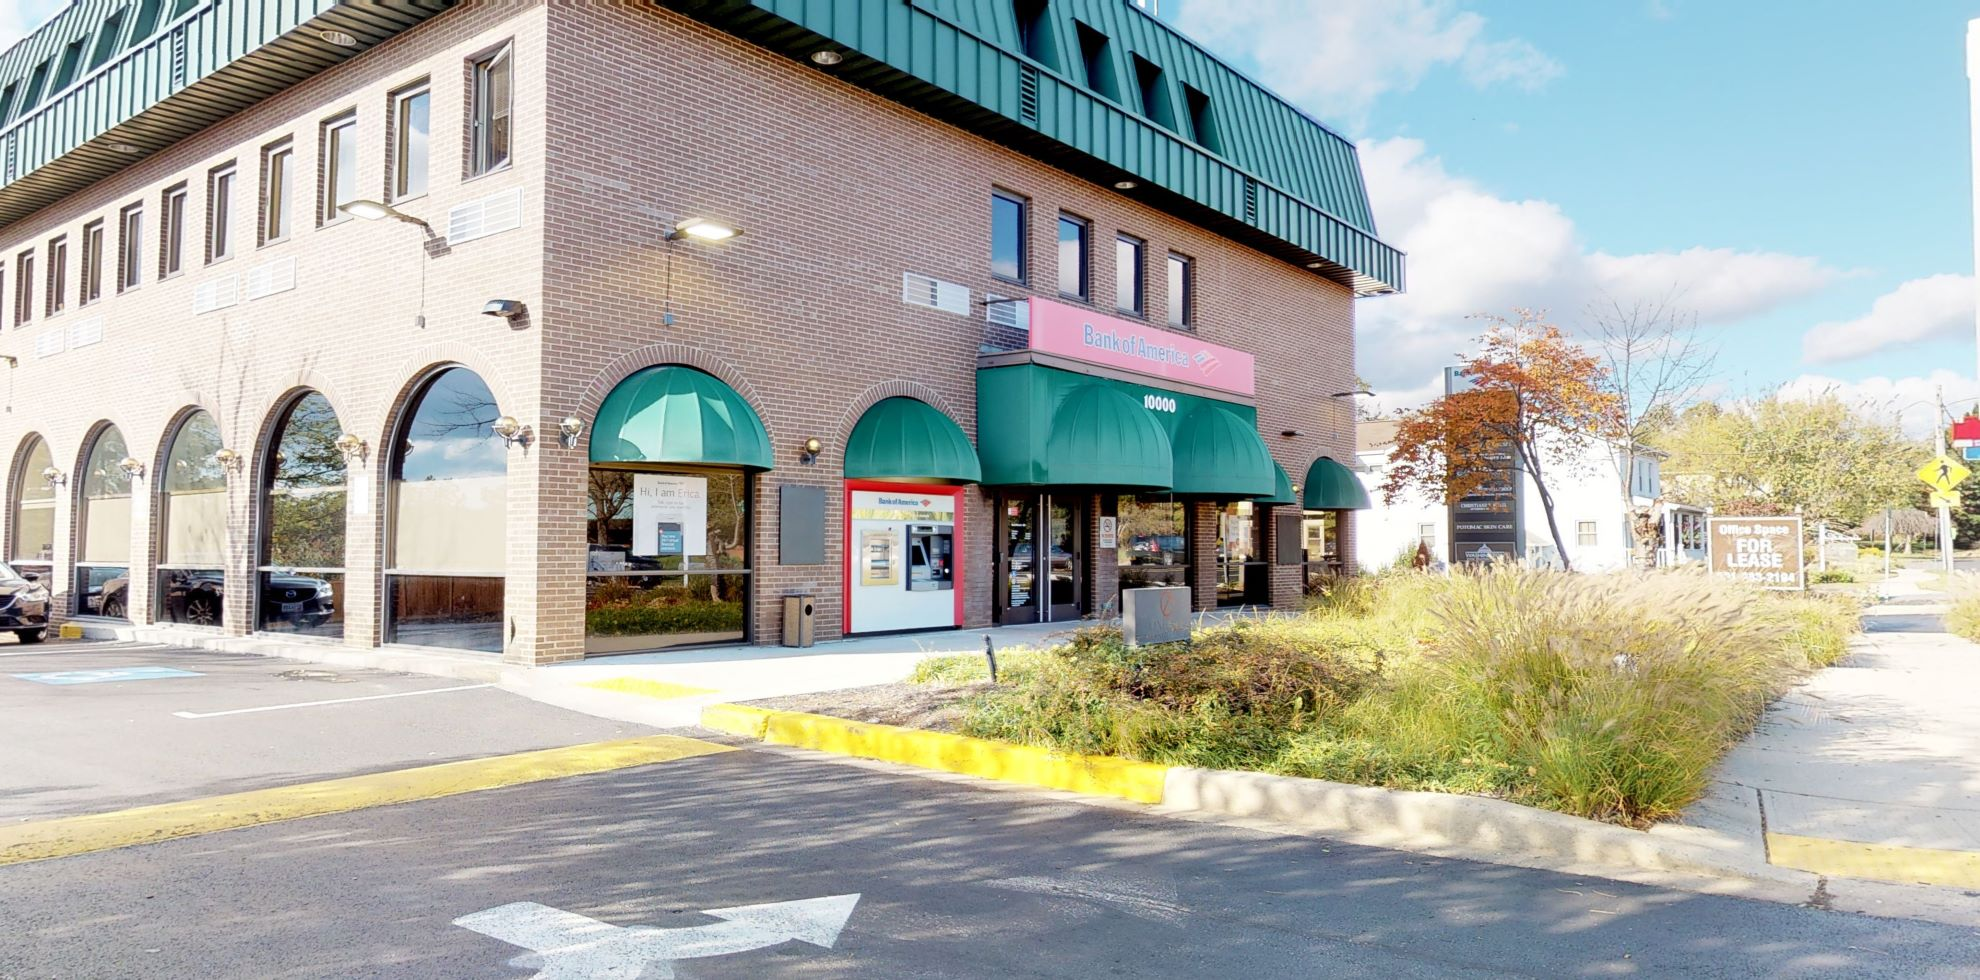 Bank of America financial center with walk-up ATM | 10000 Falls Rd, Potomac, MD 20854